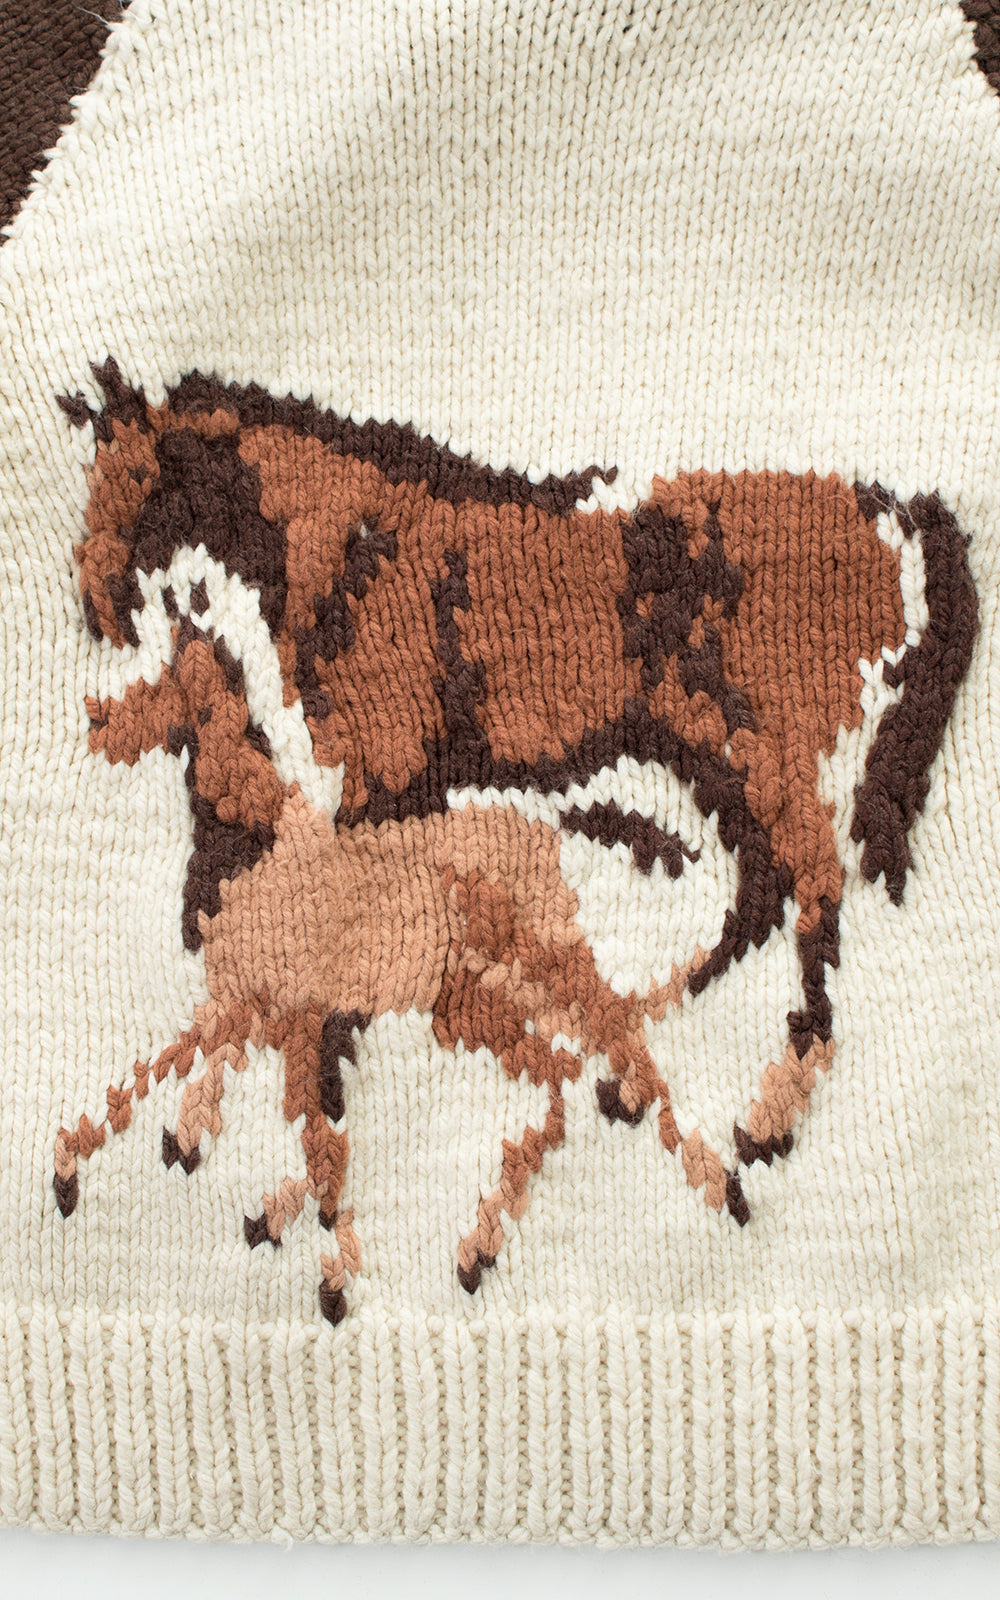 SOLD || 1970s Lucky Horseshoe & Horses Novelty Wool Cowichan Cardigan | medium/large